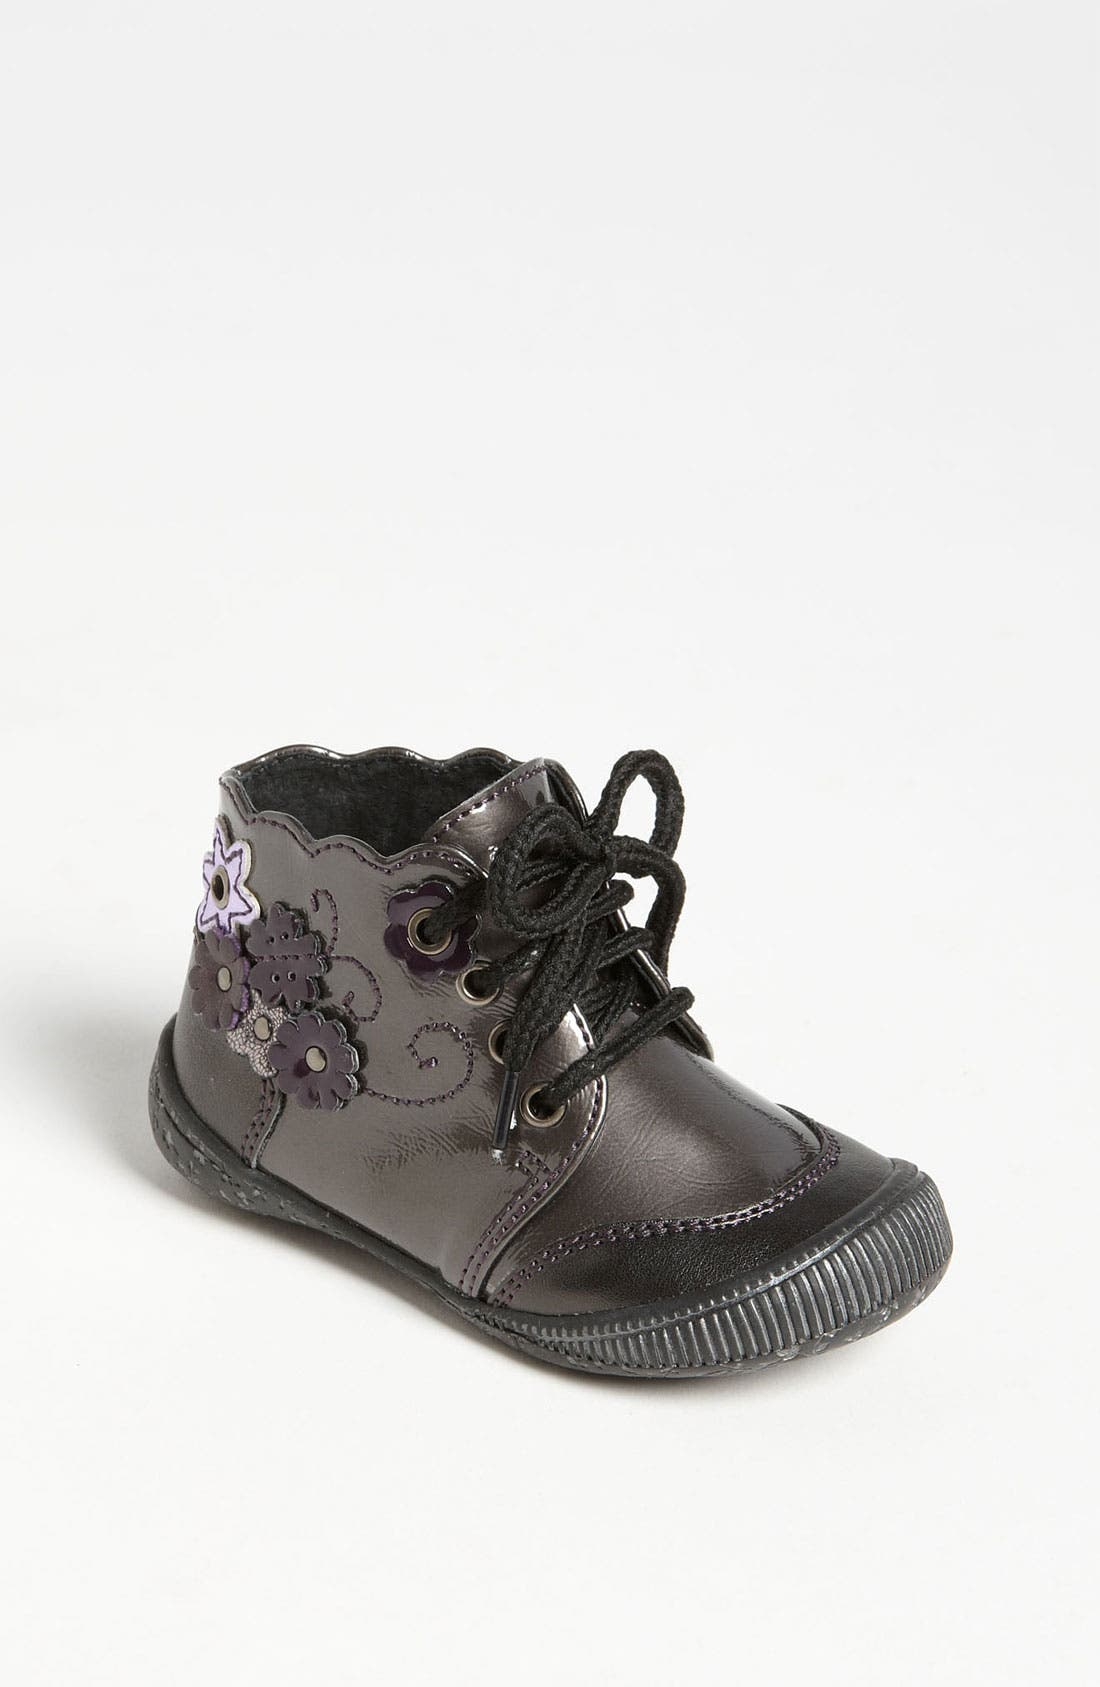 Alternate Image 1 Selected - Laura Ashley Bootie (Walker & Toddler)